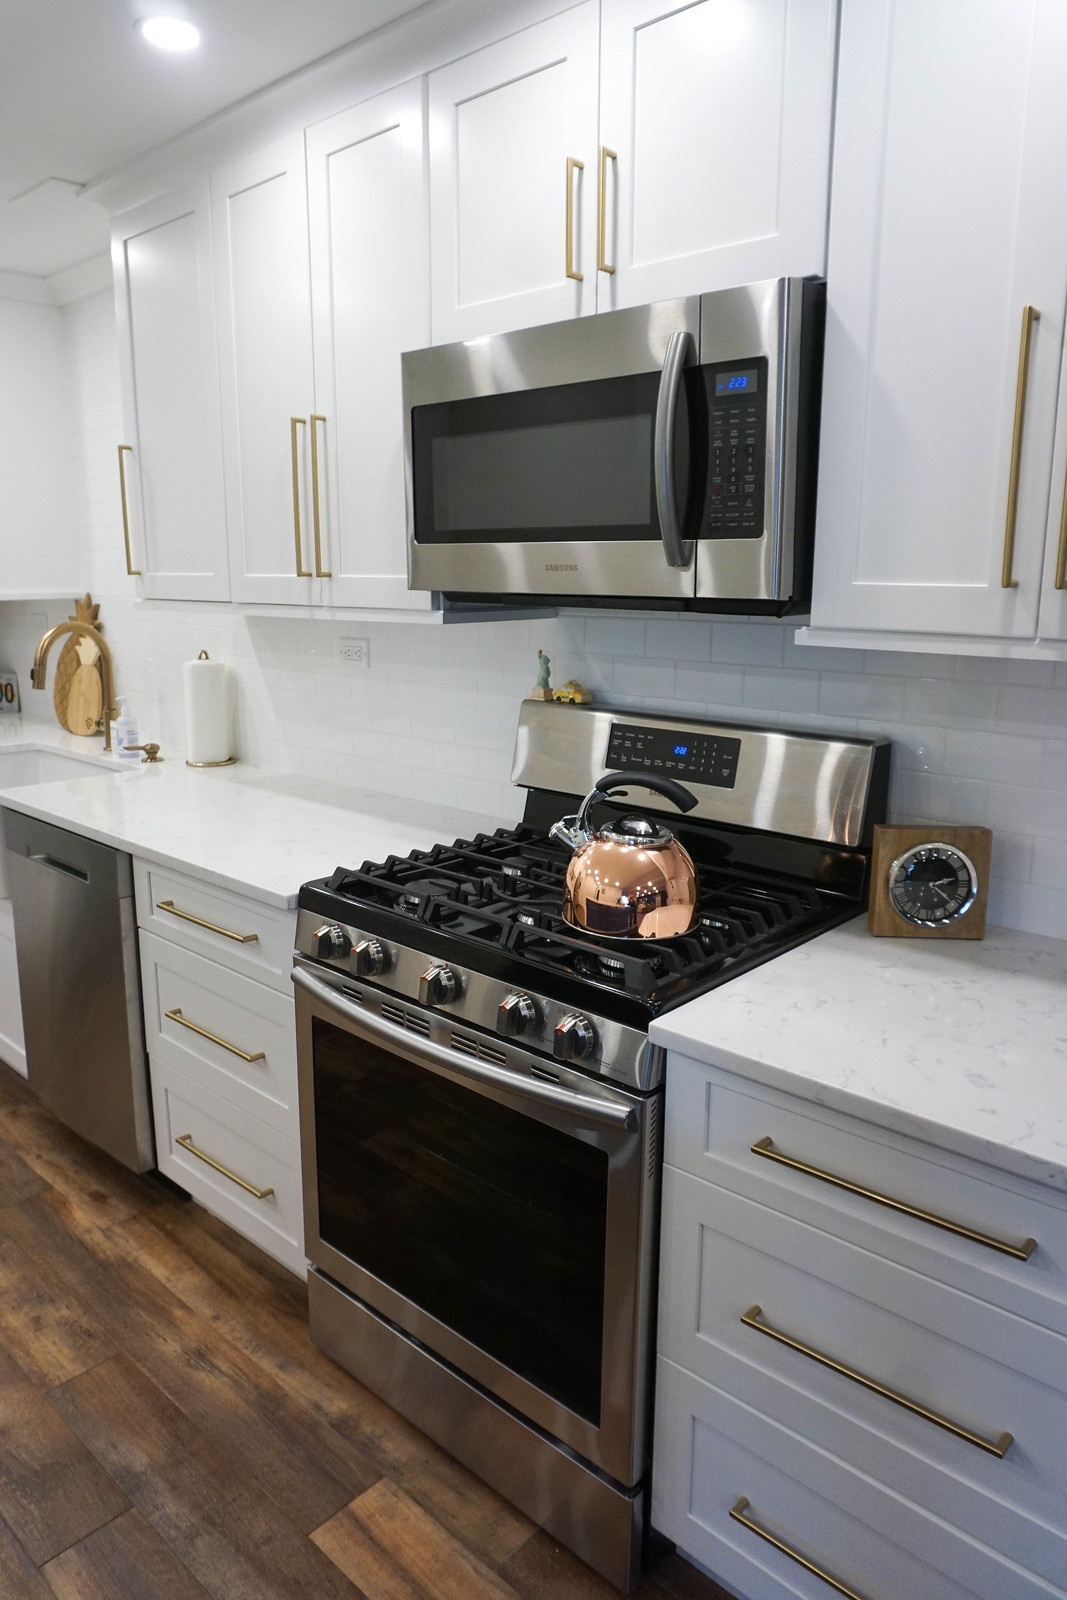 White Kitchen Cabinets Gold Hardware Pull Handles Stainless Steel Appliances